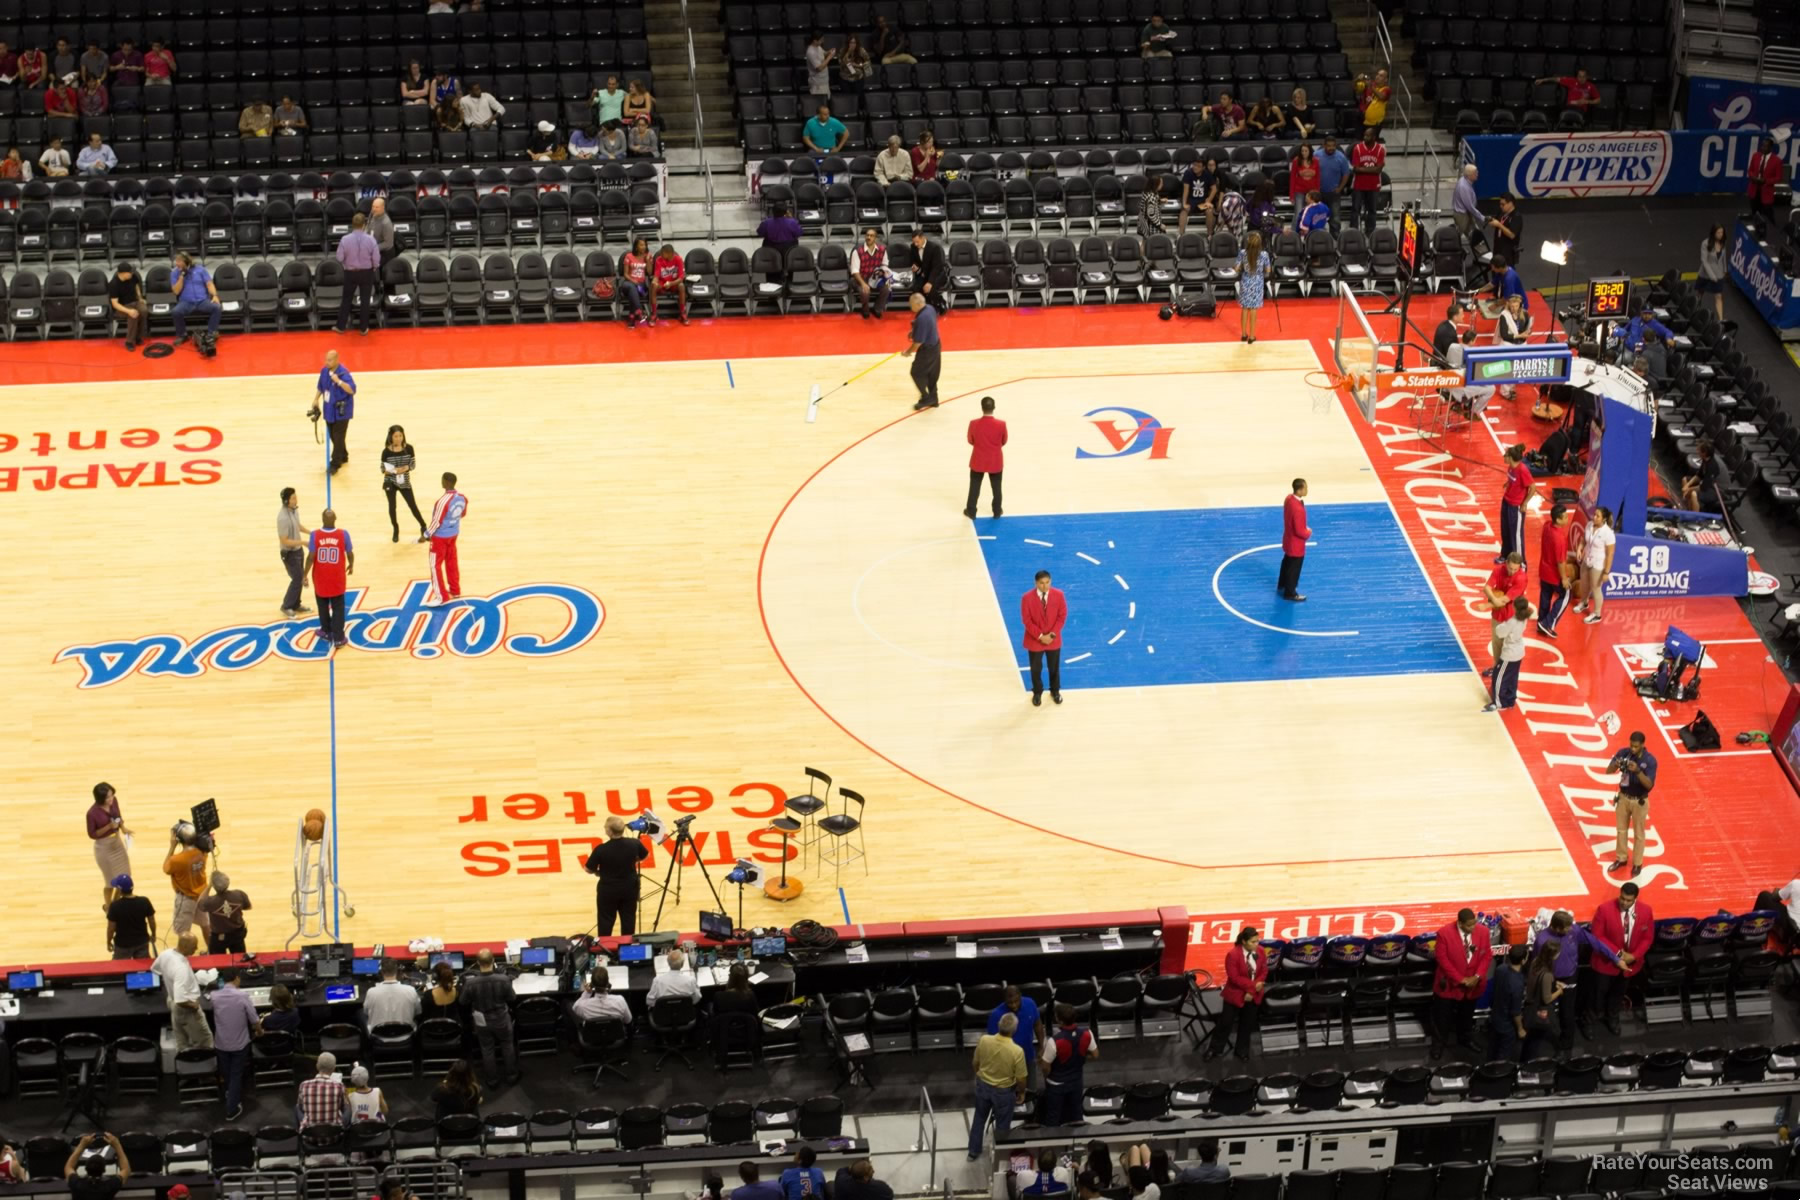 Staples Center Section 301 - Clippers/Lakers ...